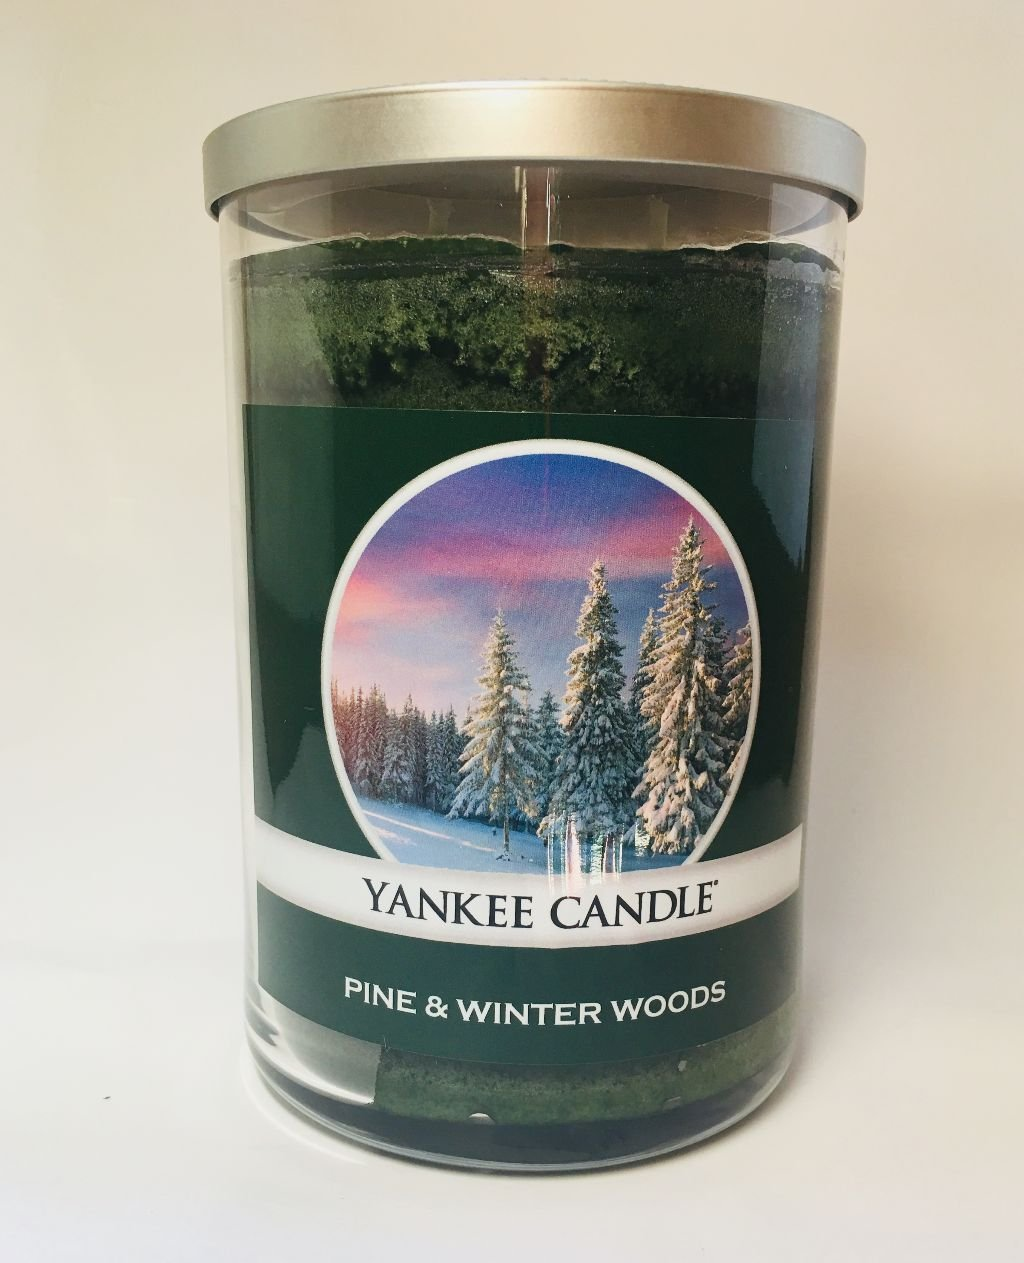 Yankee Candle Large 2 Wick PINE & WINTER WOODS Tumbler Candle